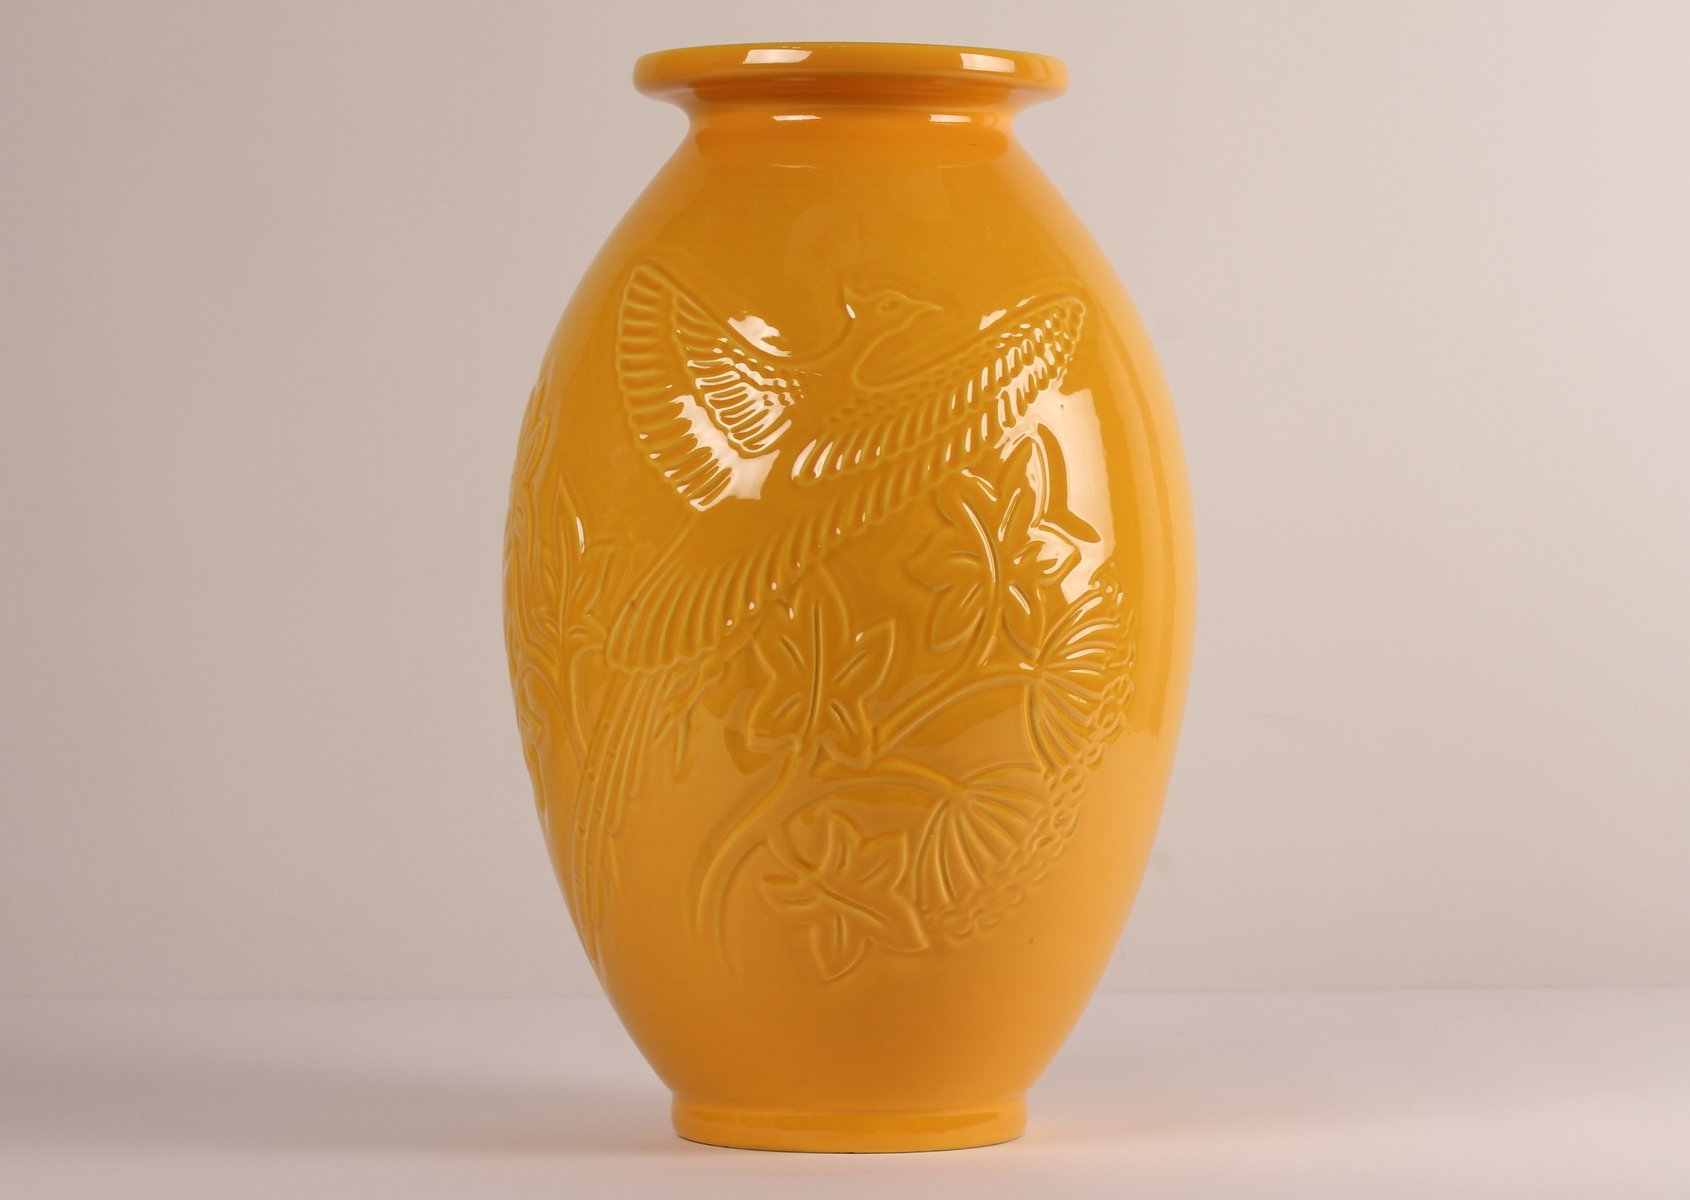 Large Yellow Ceramic Vase From Knabstrup, 1970s